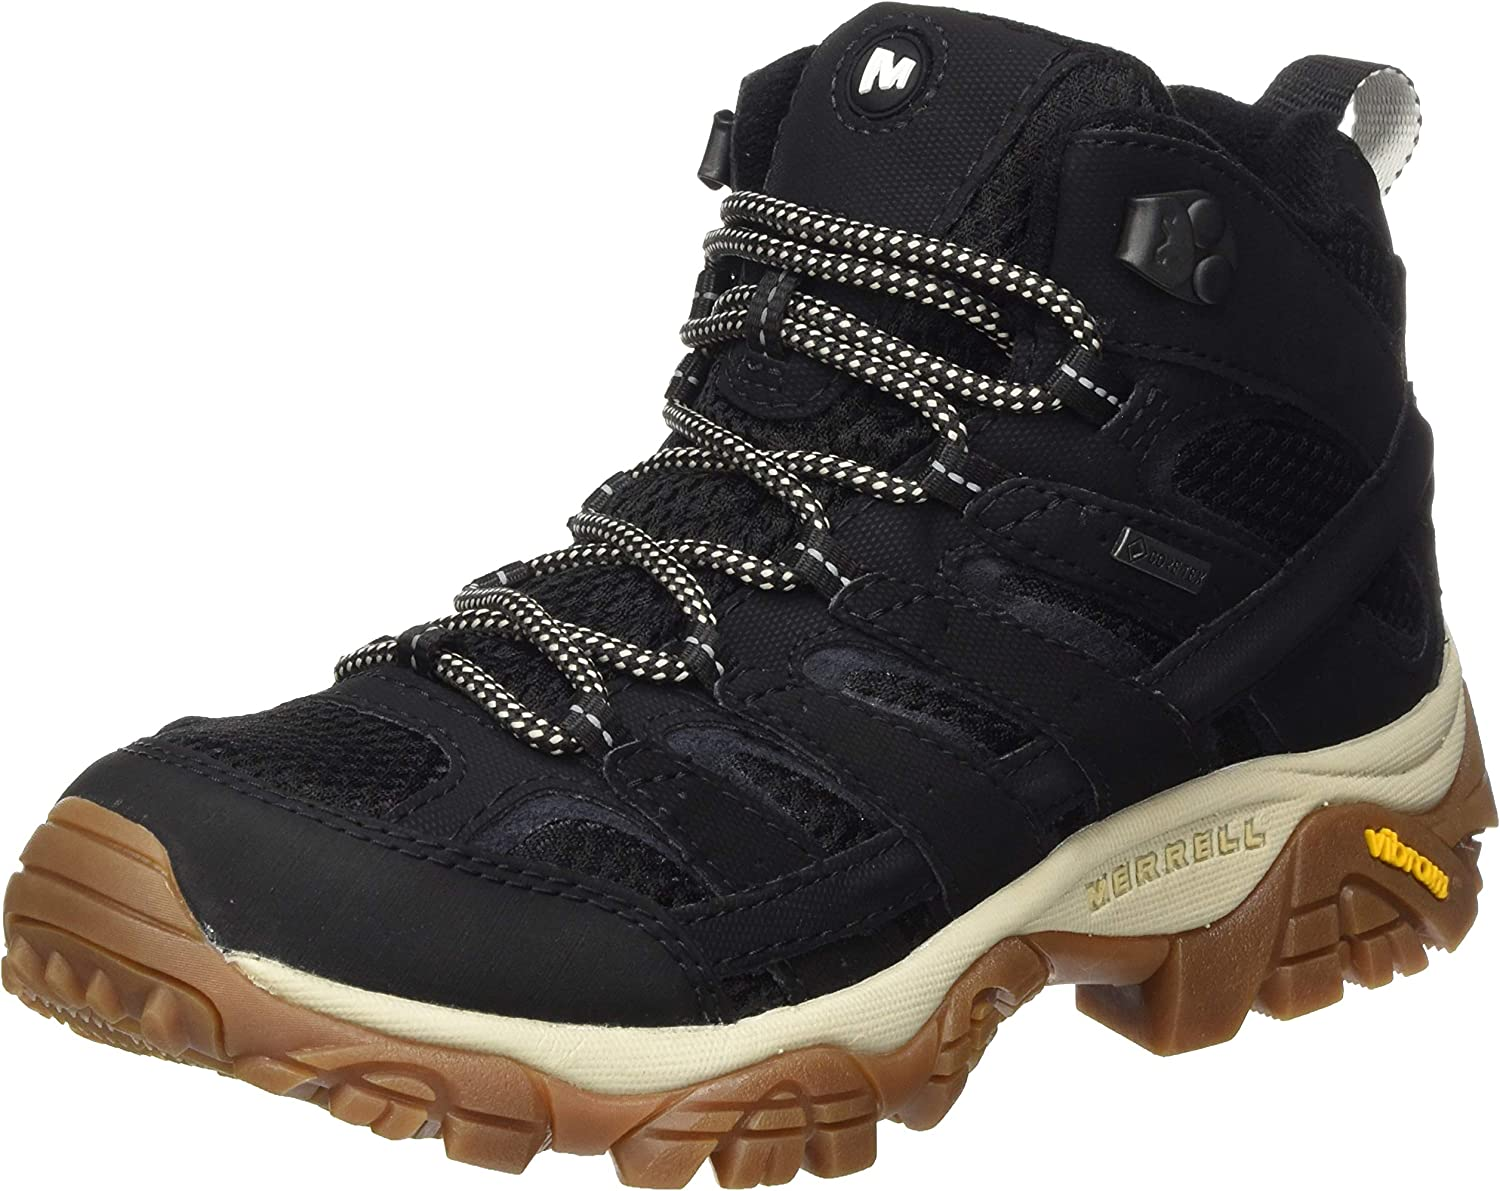 Merrell Women's High Shoes Selling Hiking Baltimore Mall Rise